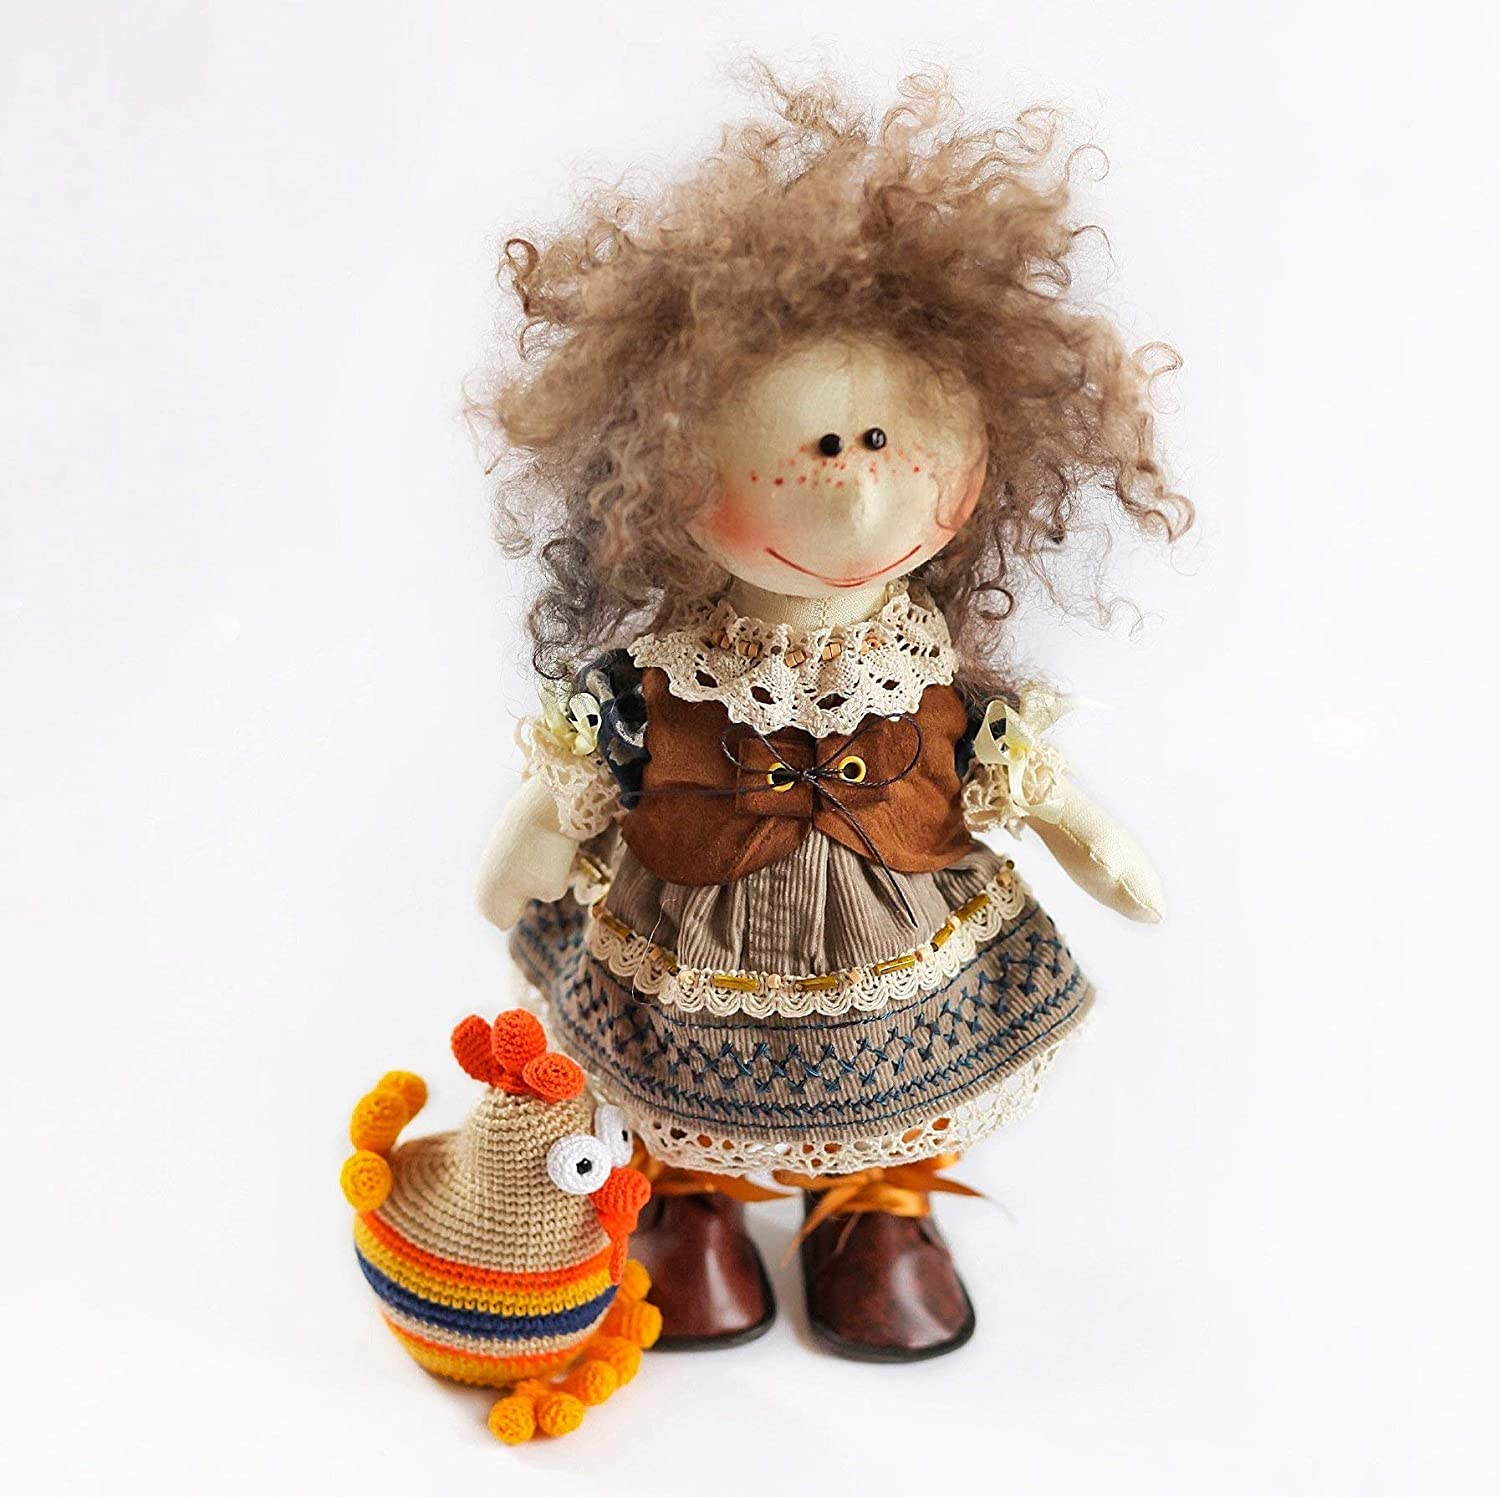 Collectible Dolls Handmade Soft Toy Home Decor Fantasy Art Doll 14 Inch